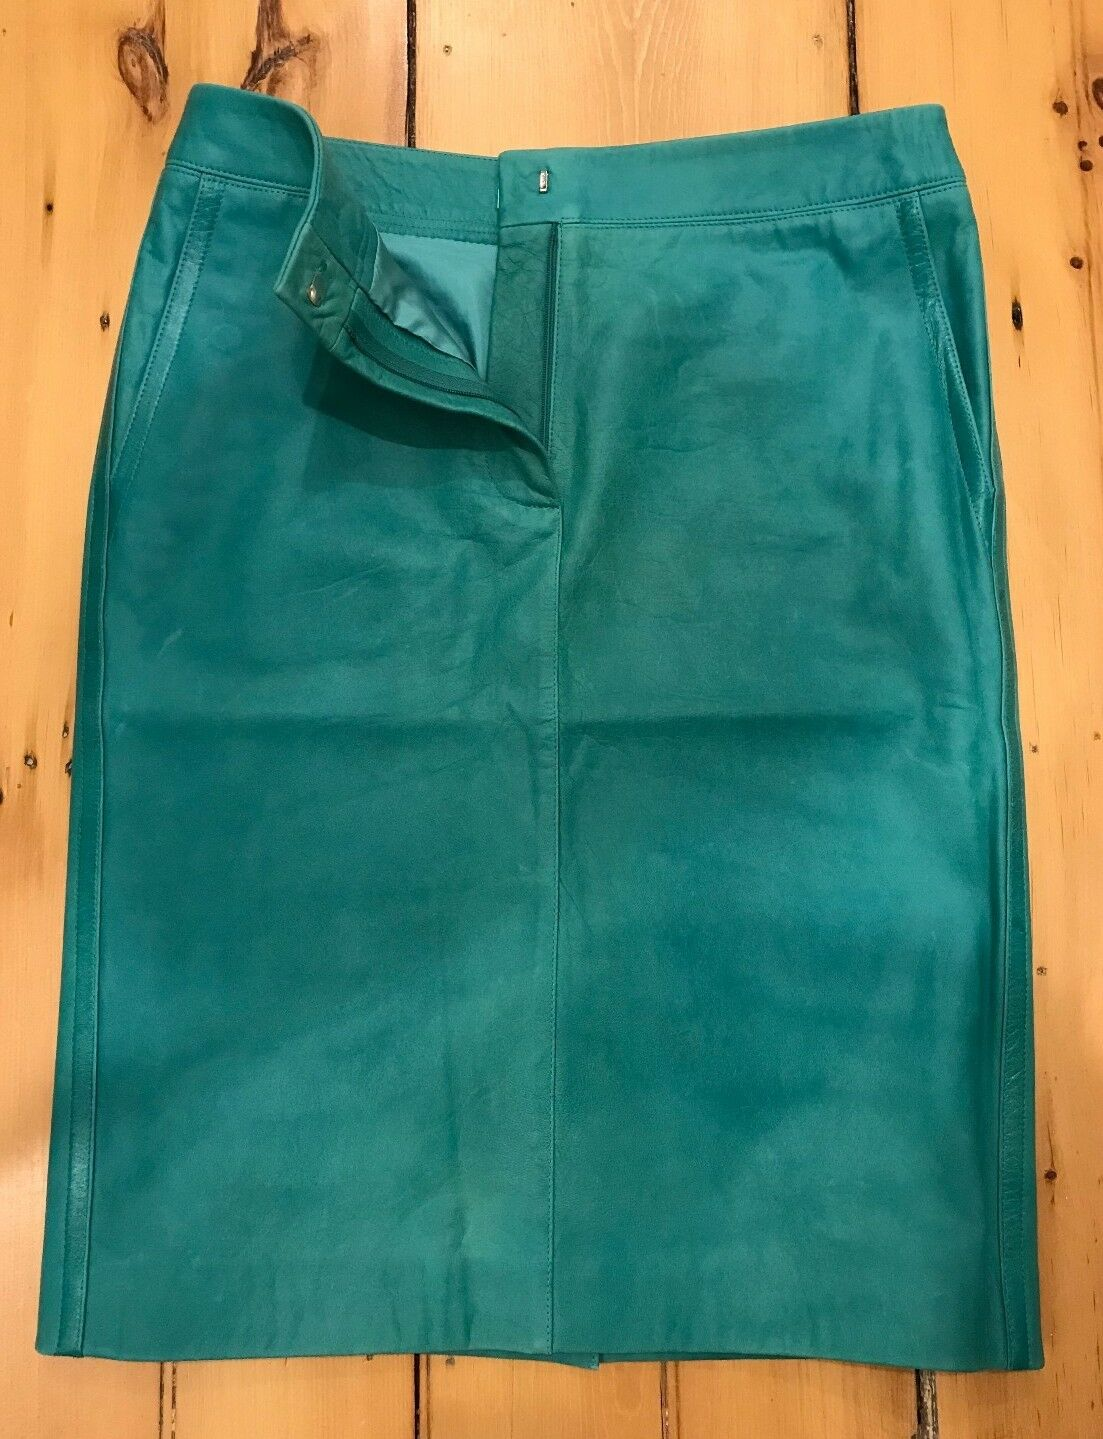 MaxMara Genuine Leather Sea Green Skirt ( 1000 original value) USA Size 8